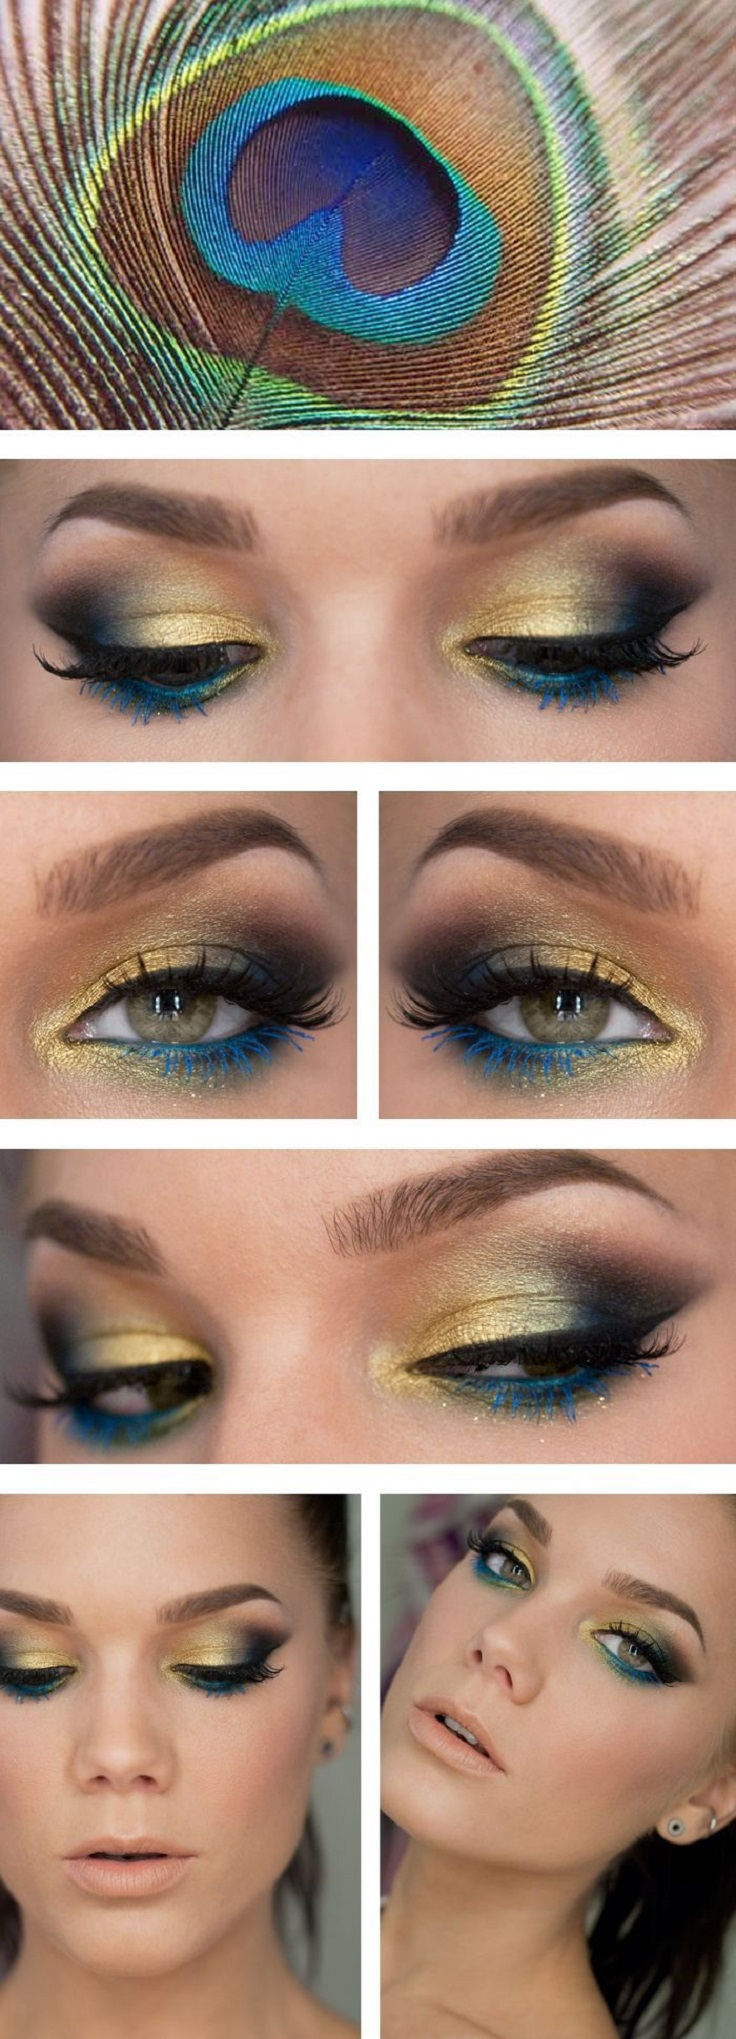 peacock-inspired-makeup-7